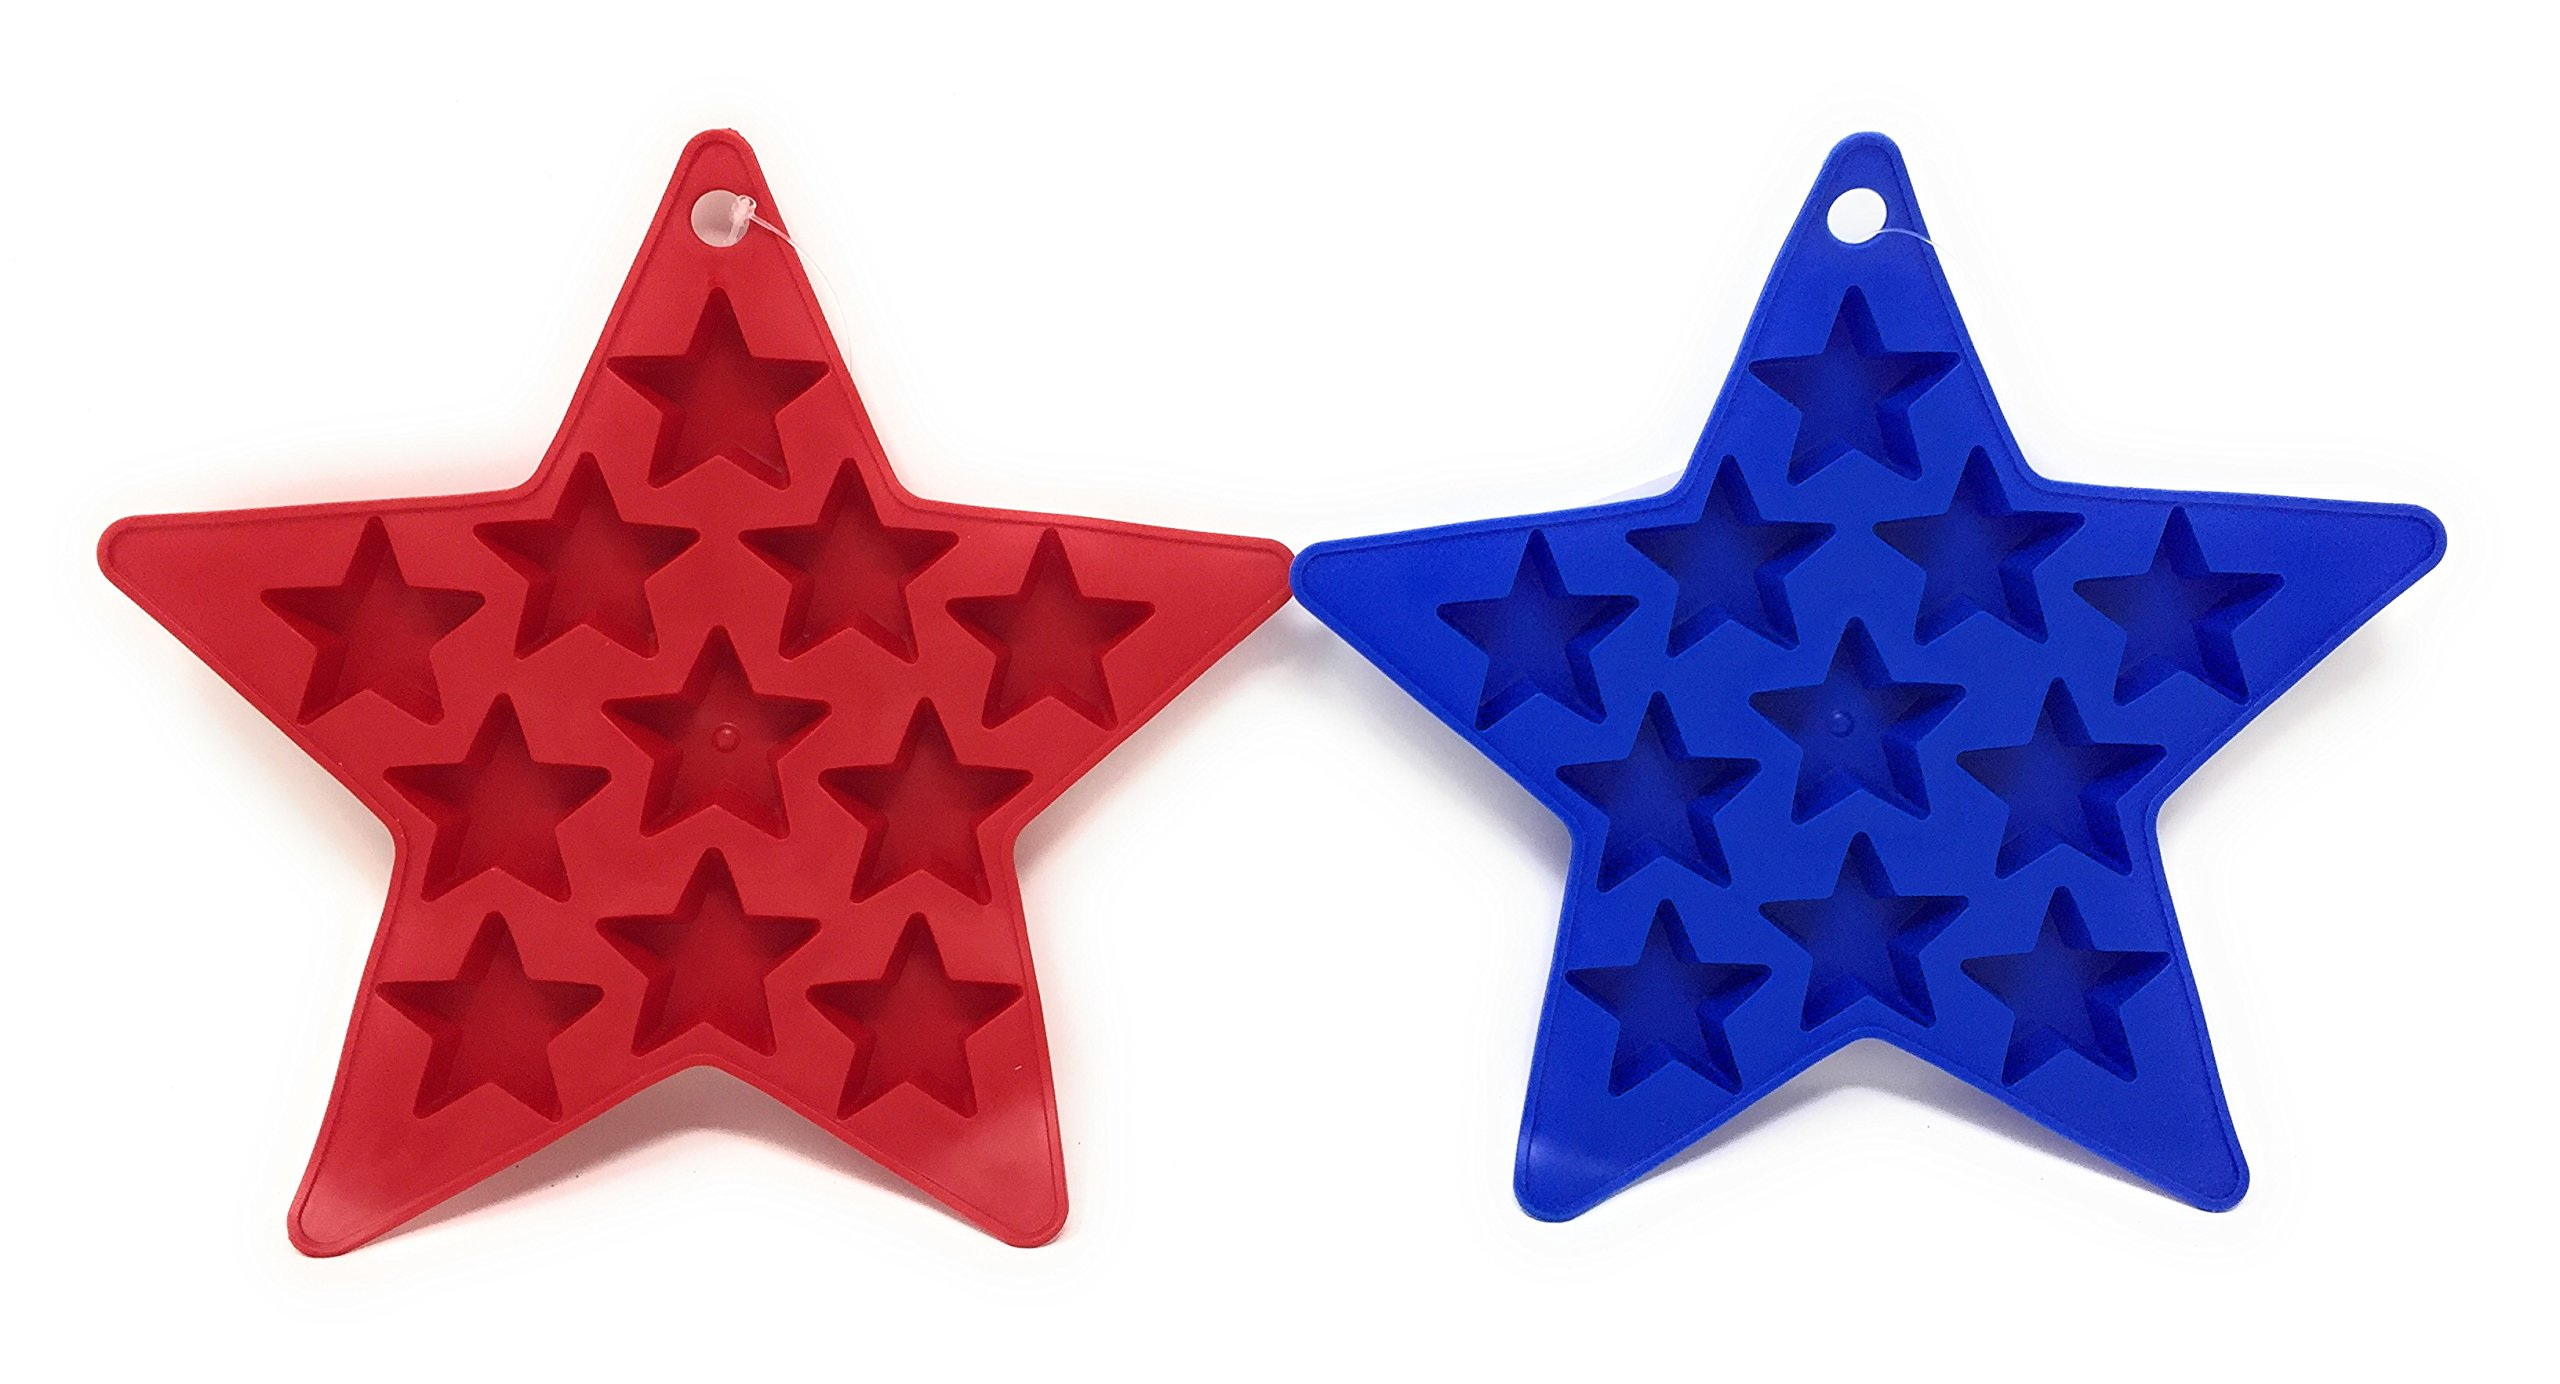 Patriotic Star Shaped Ice Cube Trays in Red and Blue (Set of 2) Makes 22 Star-Shaped Ice Cubes by Hobbeez (Image #1)